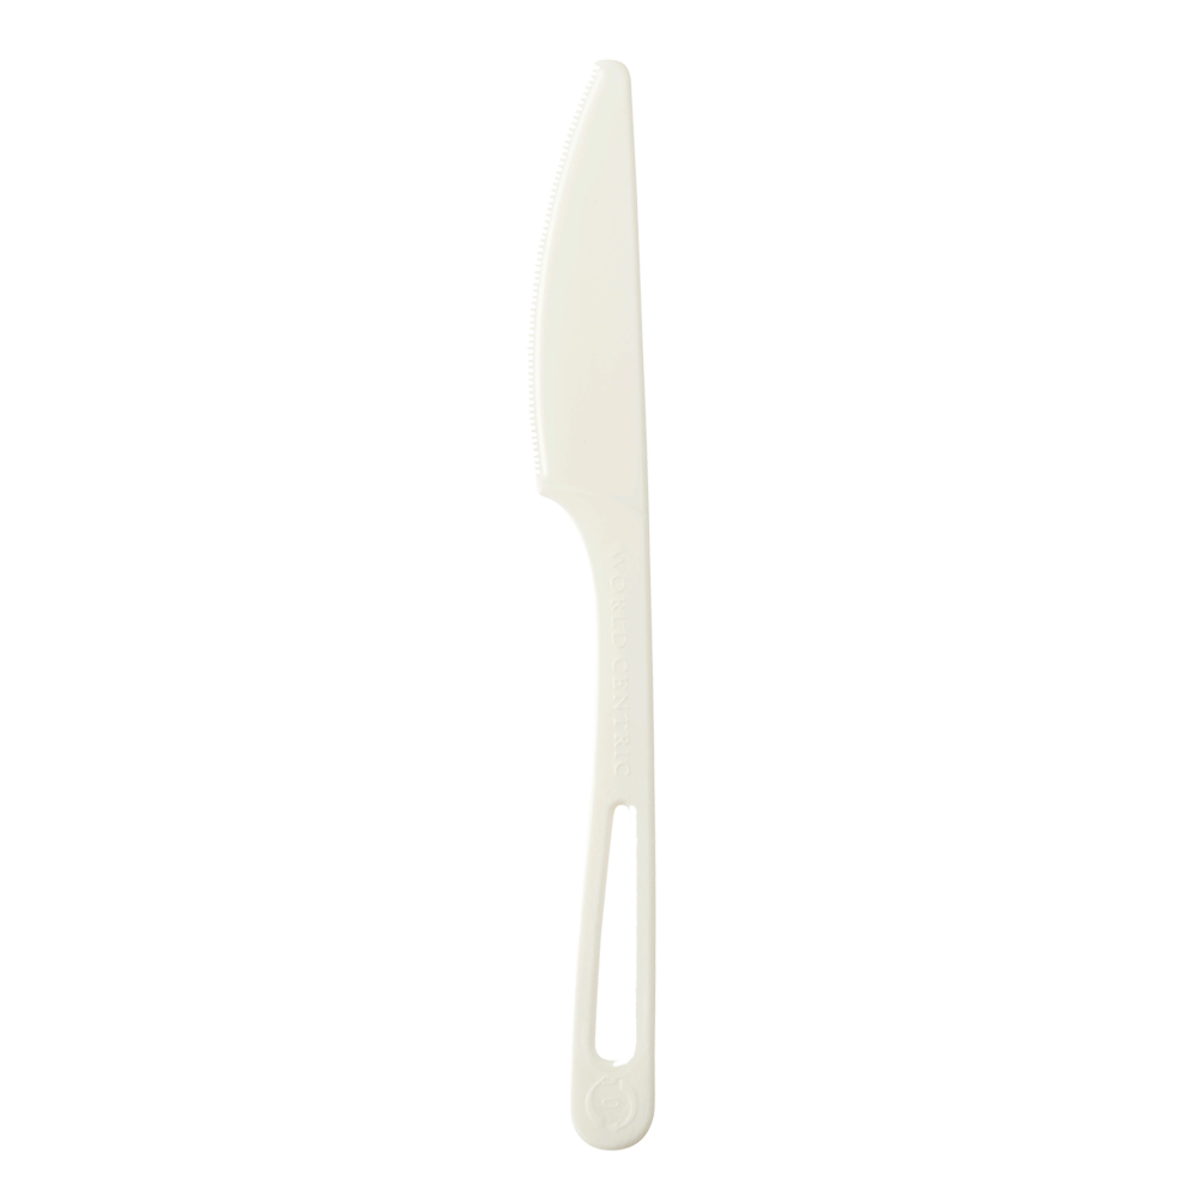 Knife ~ 100% Compostable from World Centric 1000 Units per case